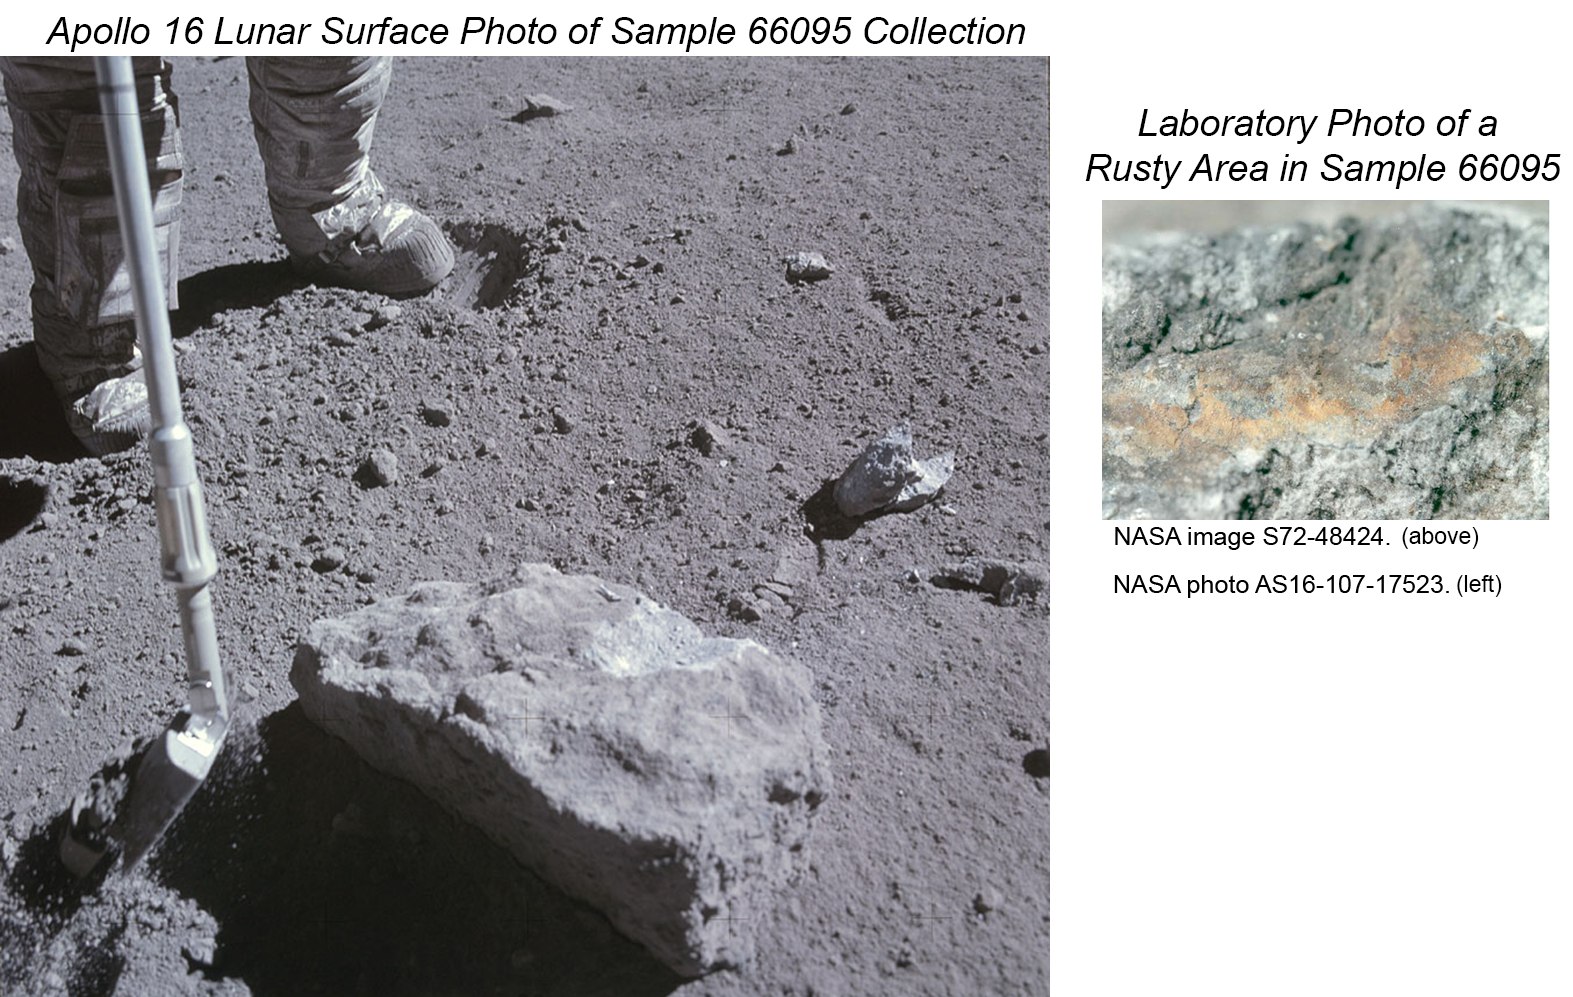 Apollo 16 sample 66095 shown at collection site on the Moon and in a close-up laboratory photo.